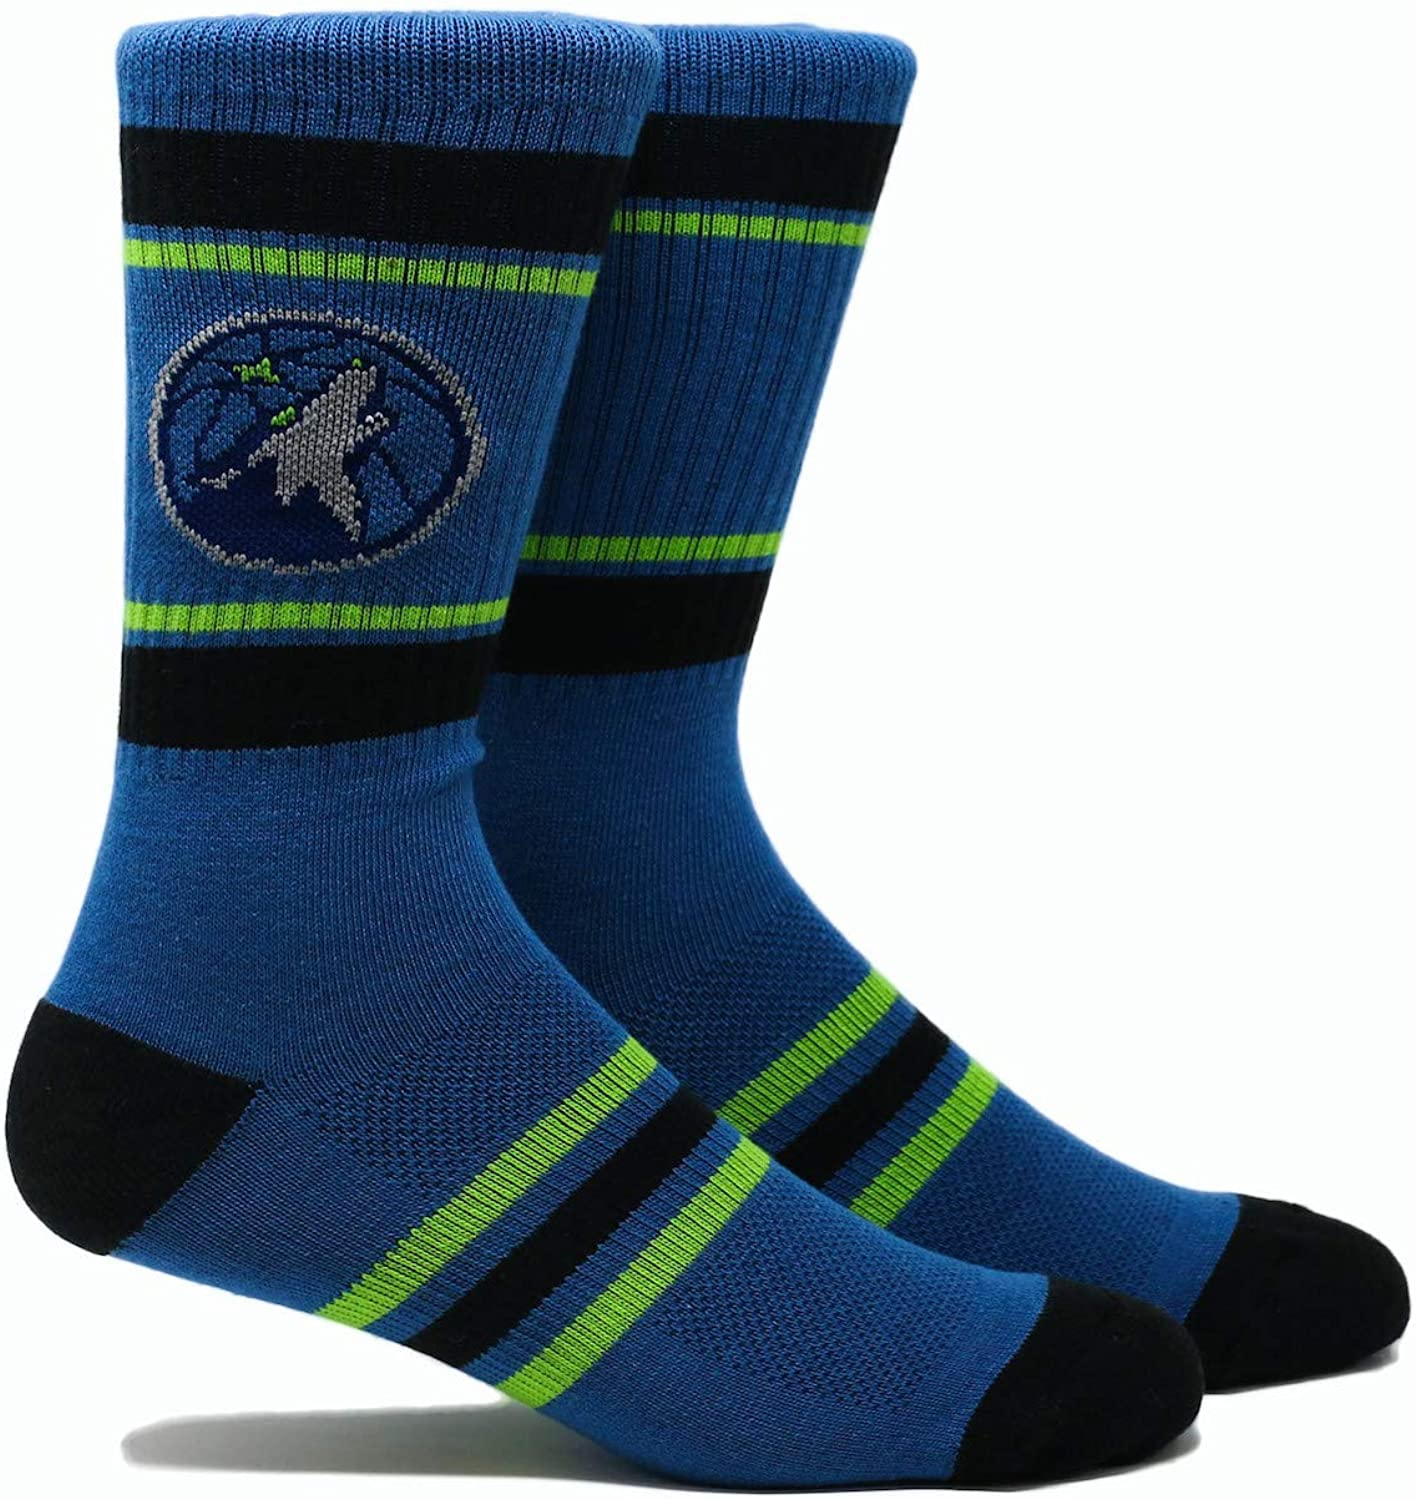 PKWY NBA Minnesota Timberwolves Unisex 1-Pack Crew Socks